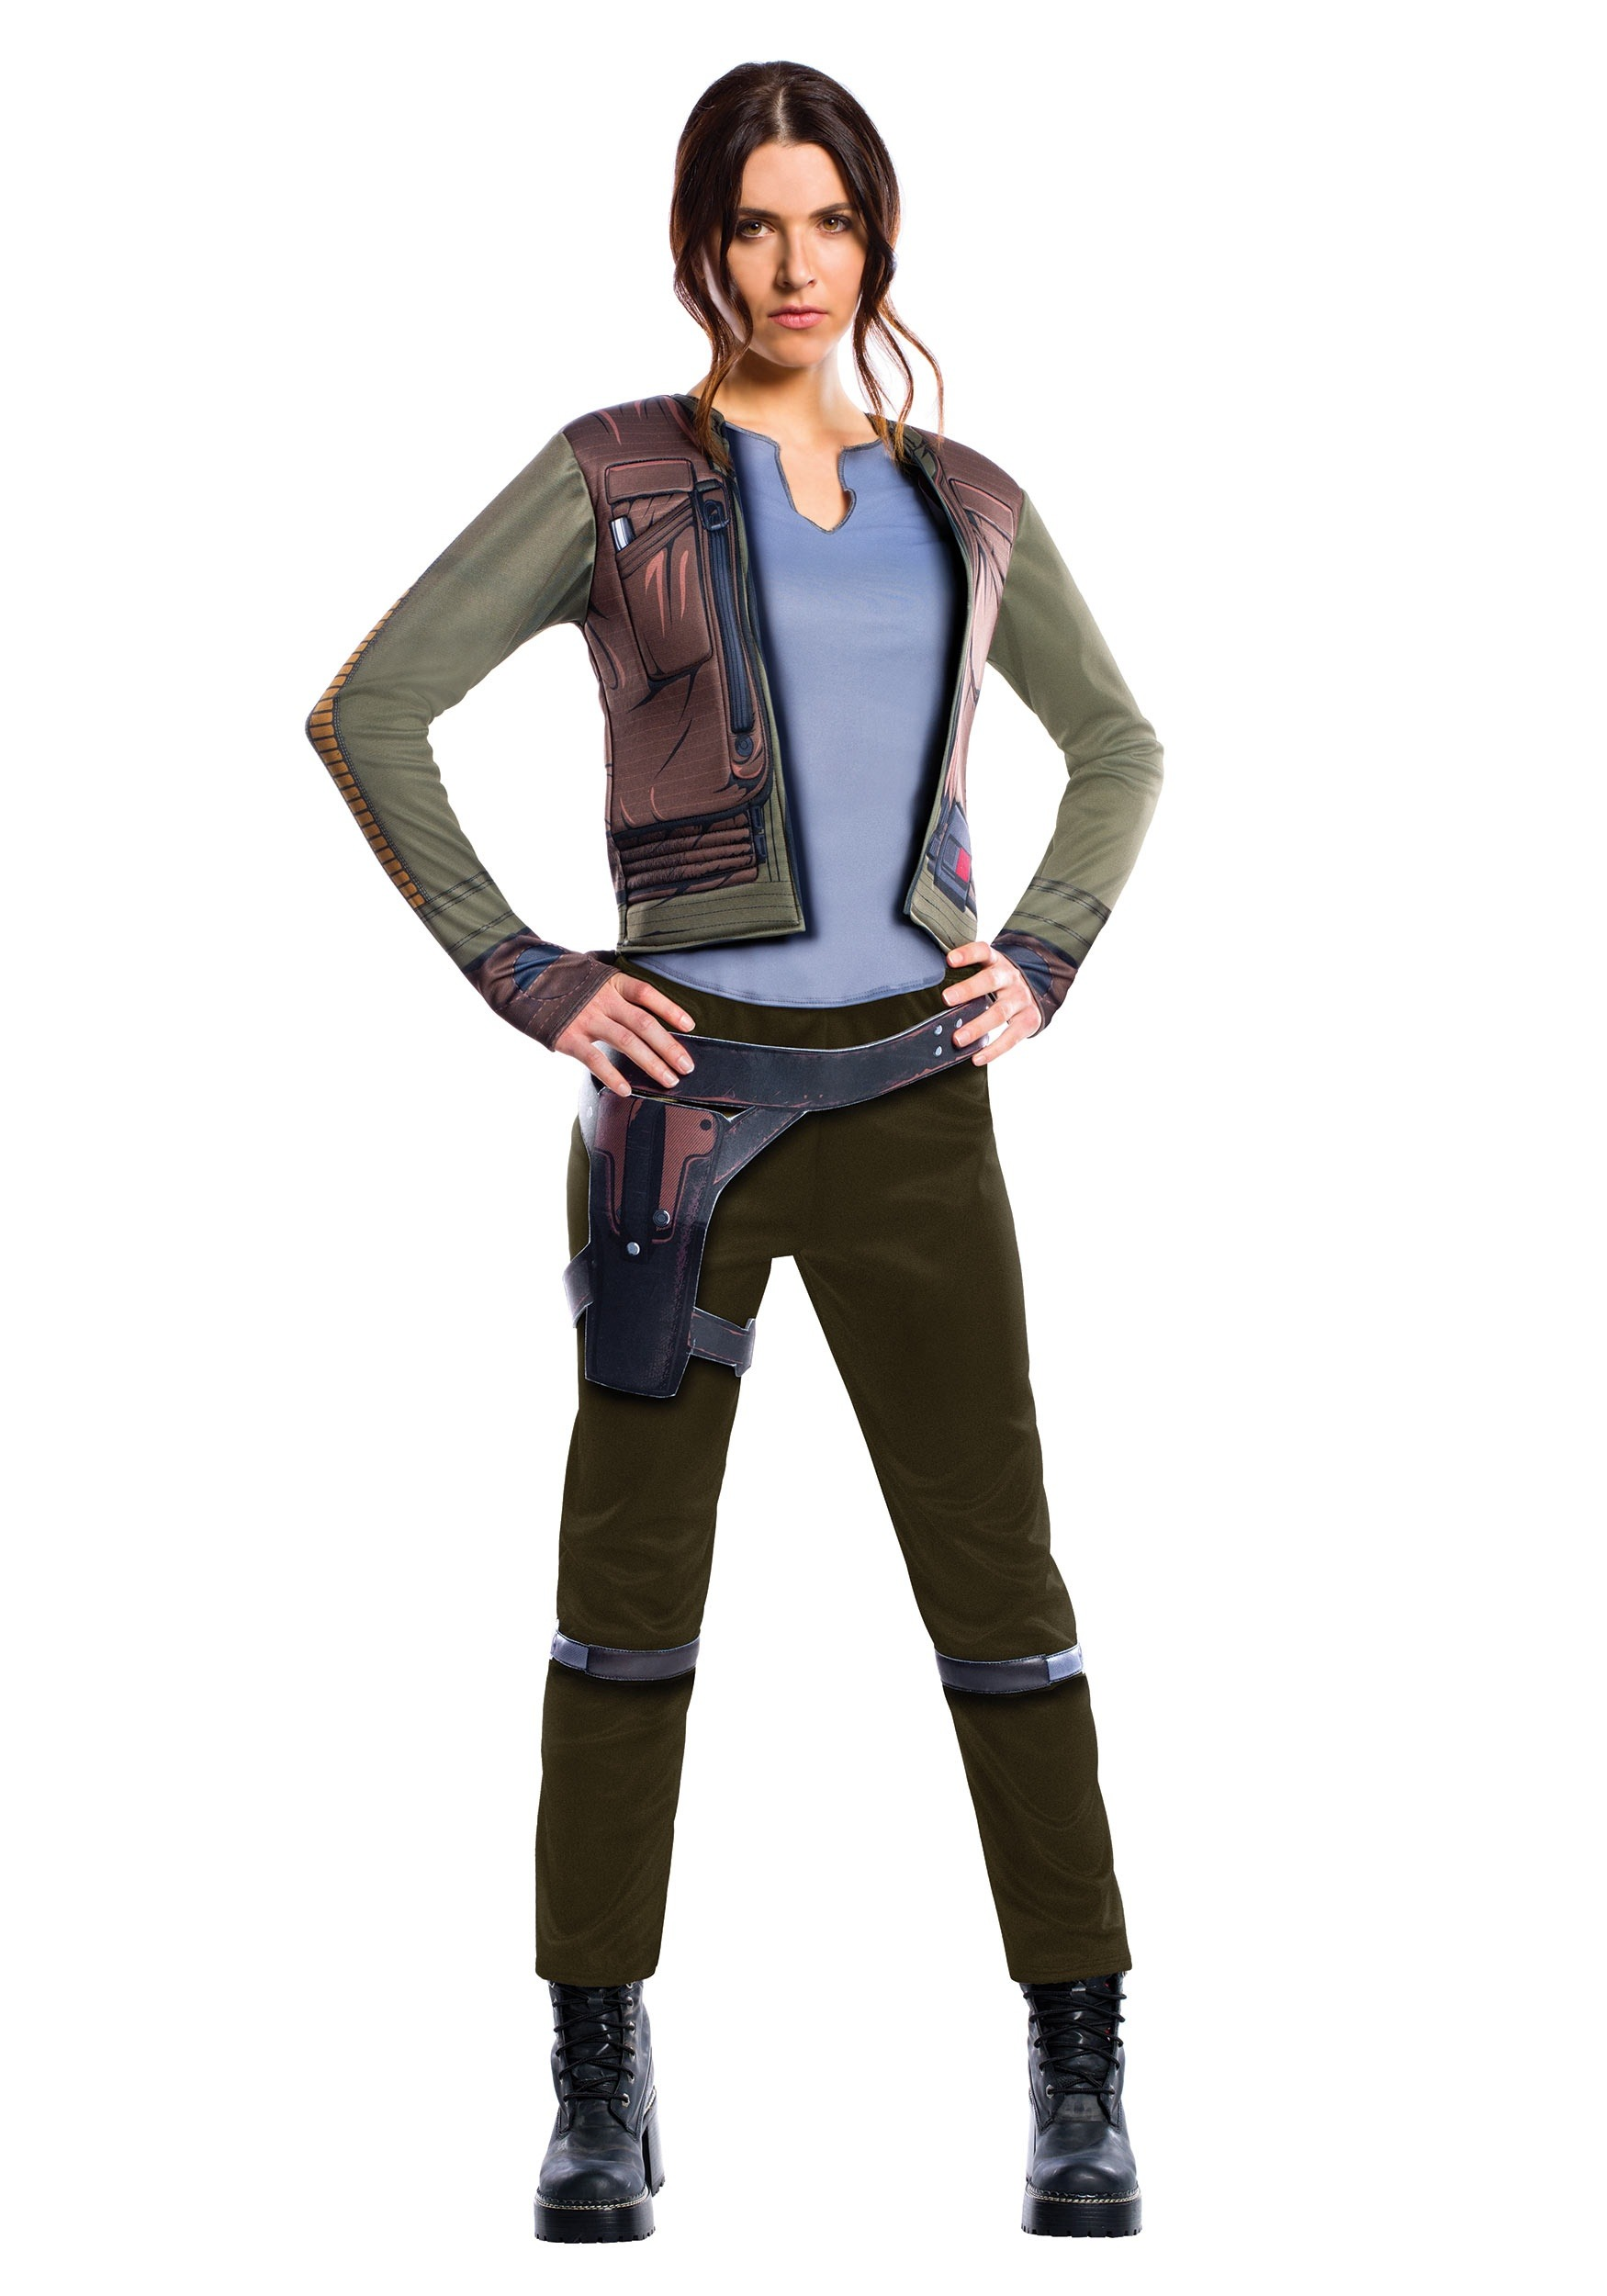 Star Wars Rogue One Adult Womenu0027s Deluxe Jyn Erso Costume  sc 1 st  Halloween Costumes & Womenu0027s Adult Deluxe Jyn Erso Costume from Star Wars: Rogue One